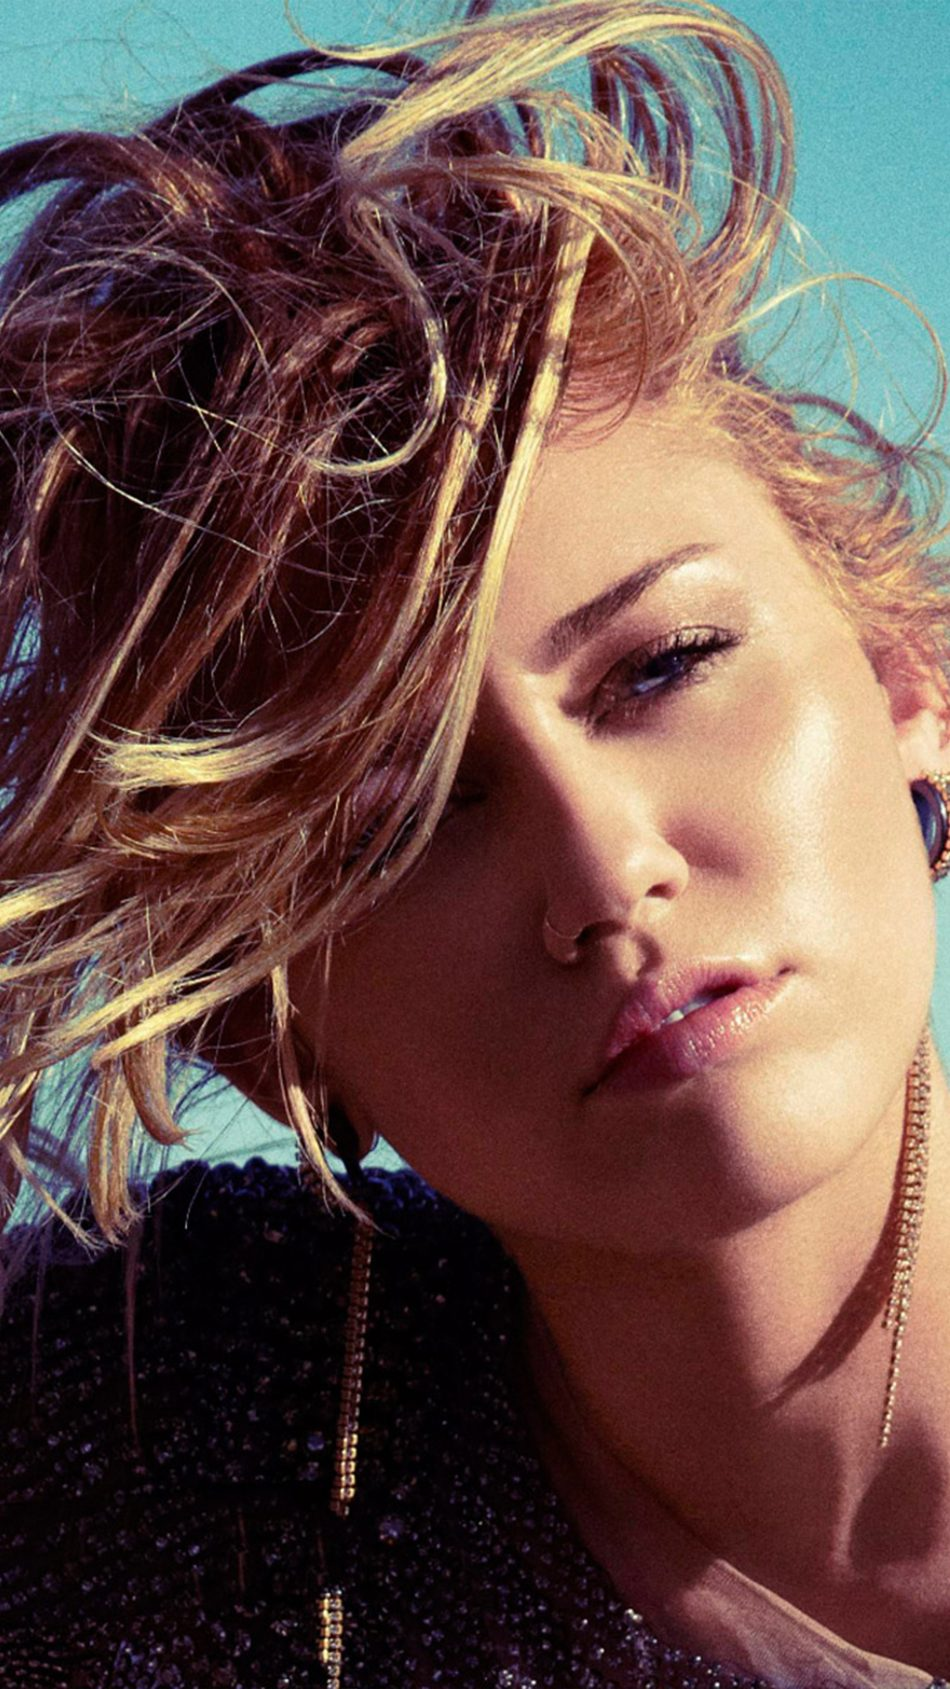 Download Miley Cyrus 2019 Free Pure 4k Ultra Hd Mobile Wallpaper